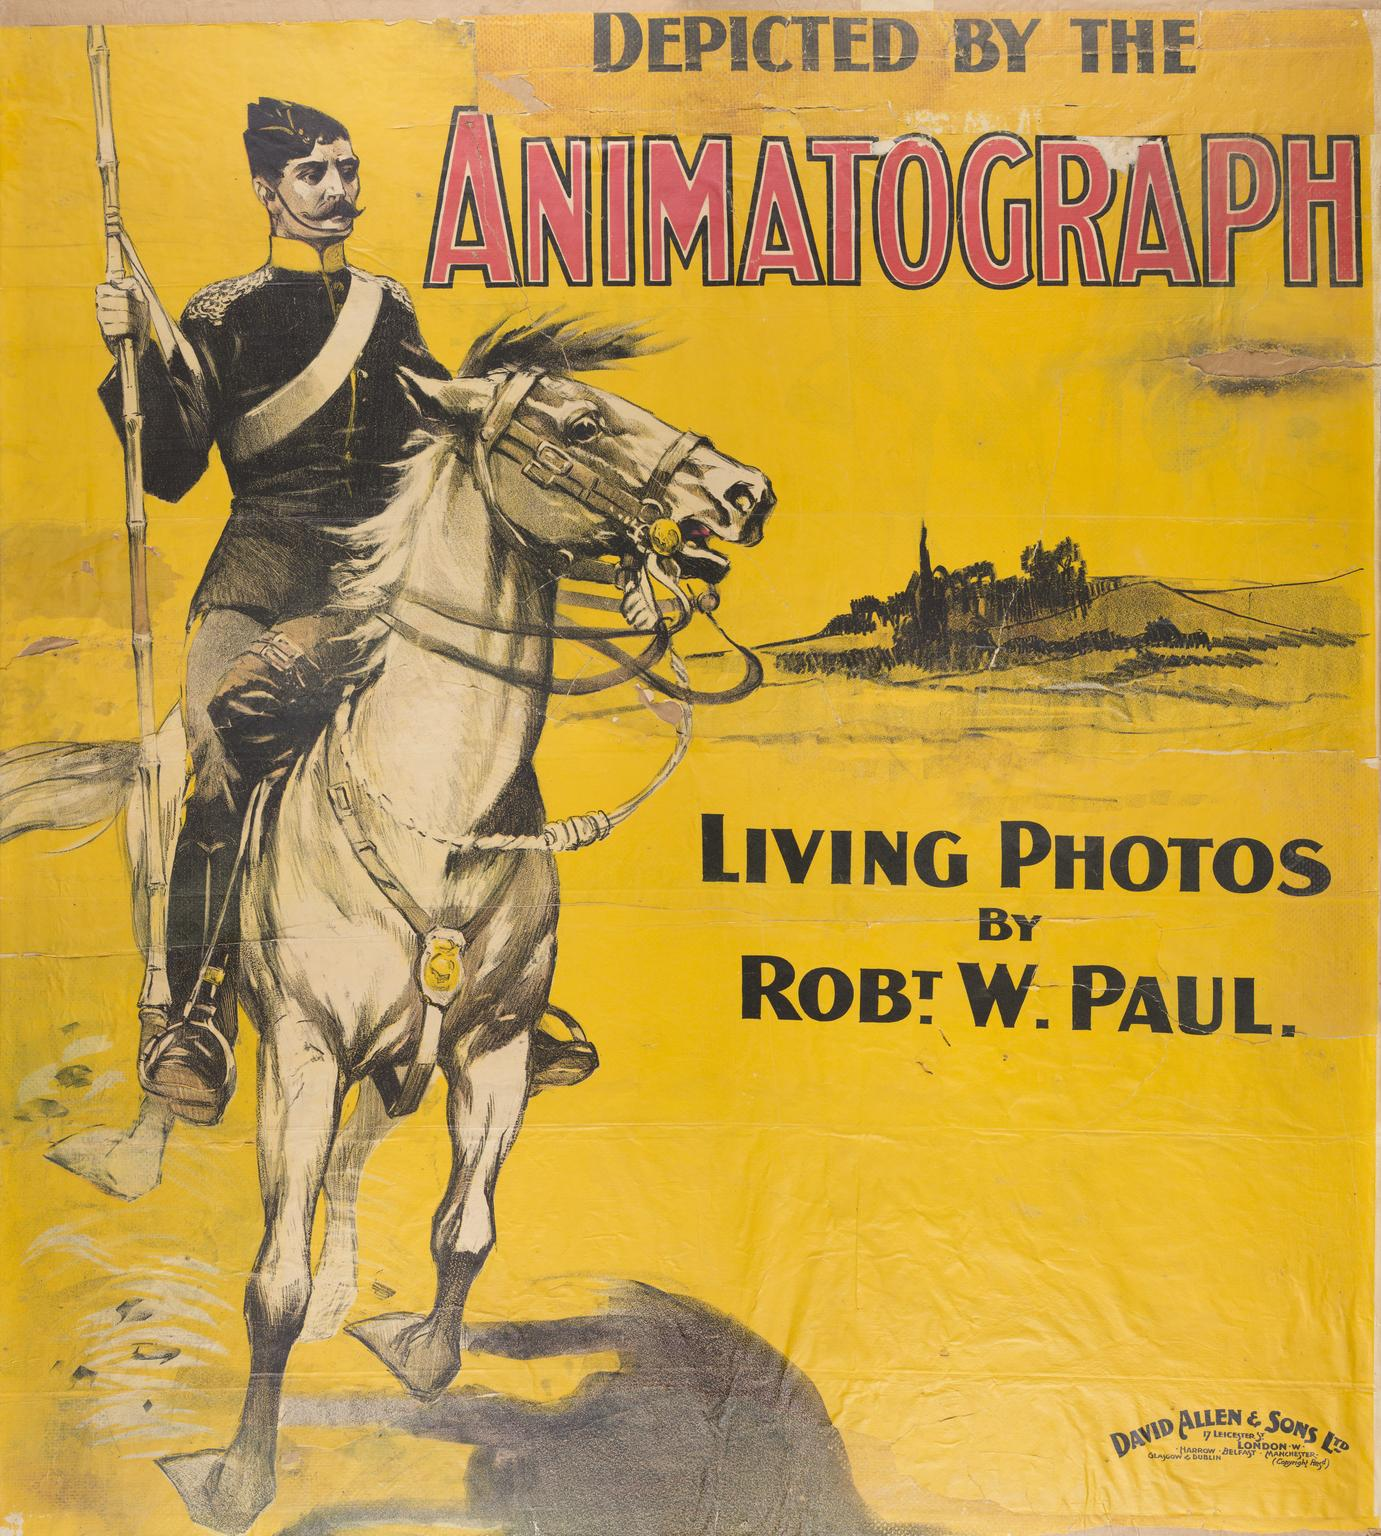 A poster for Robert Paul's animatograph. Showing soldier on a horse